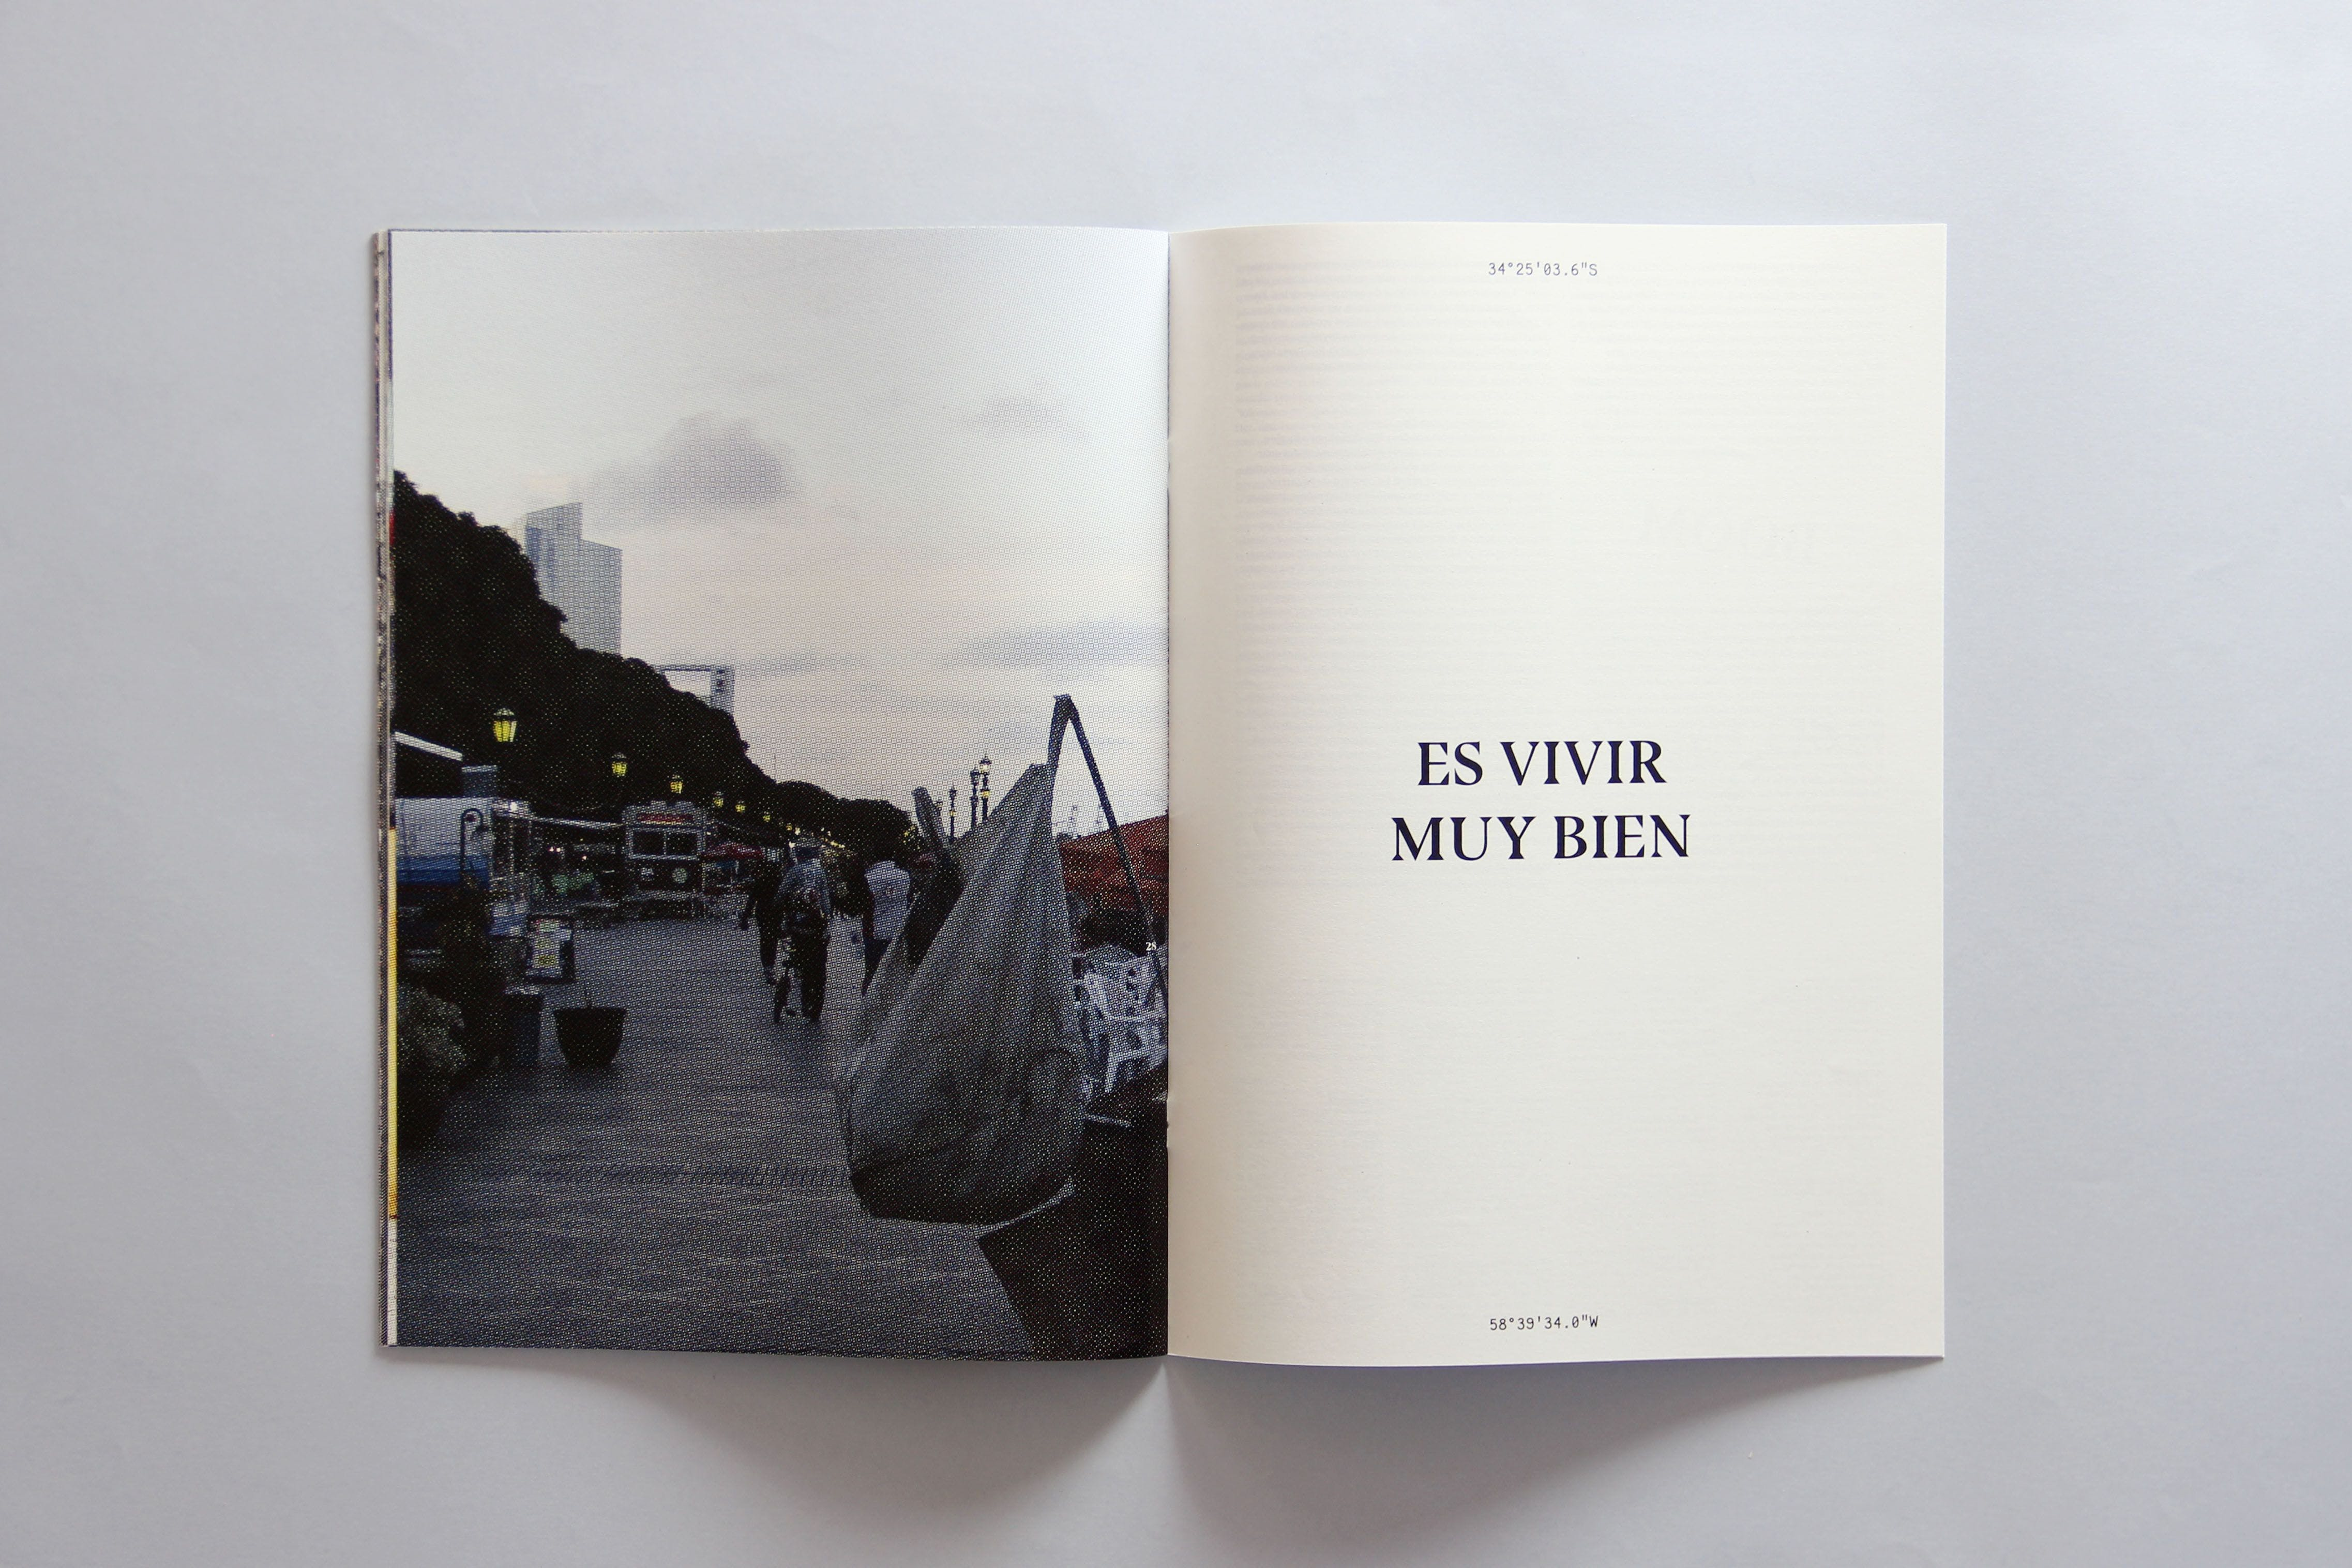 Left page depicts a camp ground, right page has the text ES VIVIR MUY BIEN